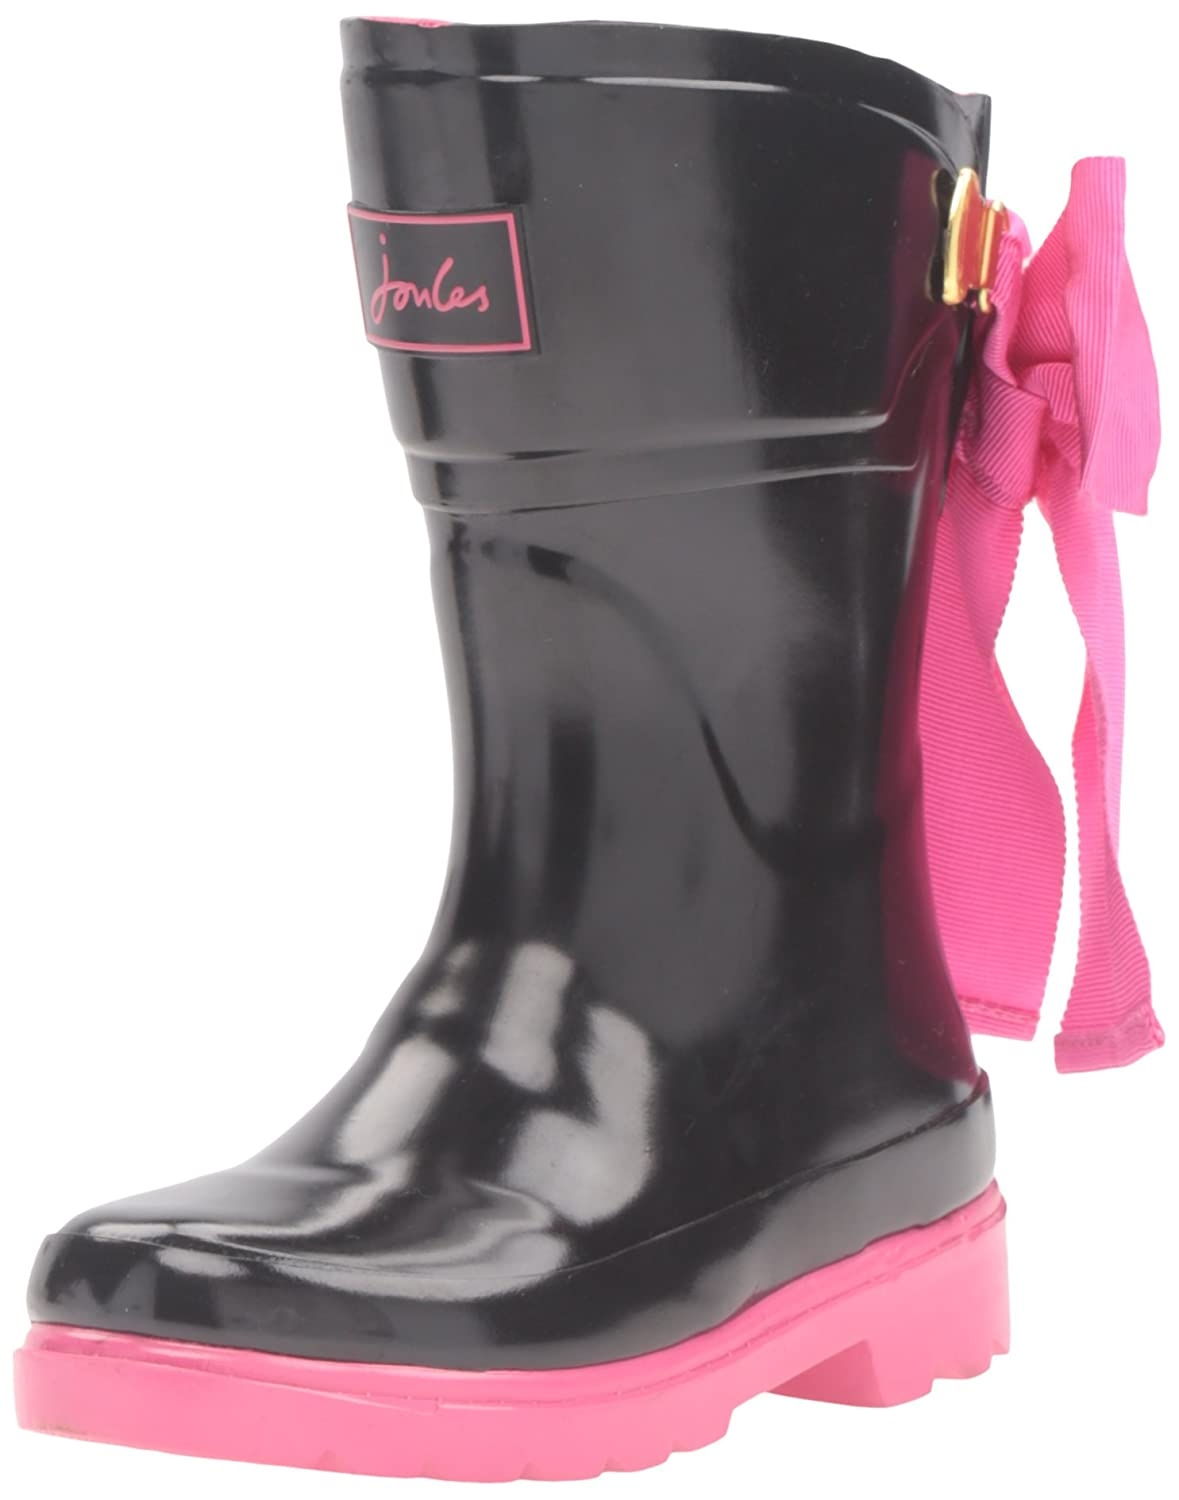 Joules JNR Evedon Welly Rain Boot (Infant/Toddler/Little Kid/Big Kid) JNR EVEDON WELLY - K